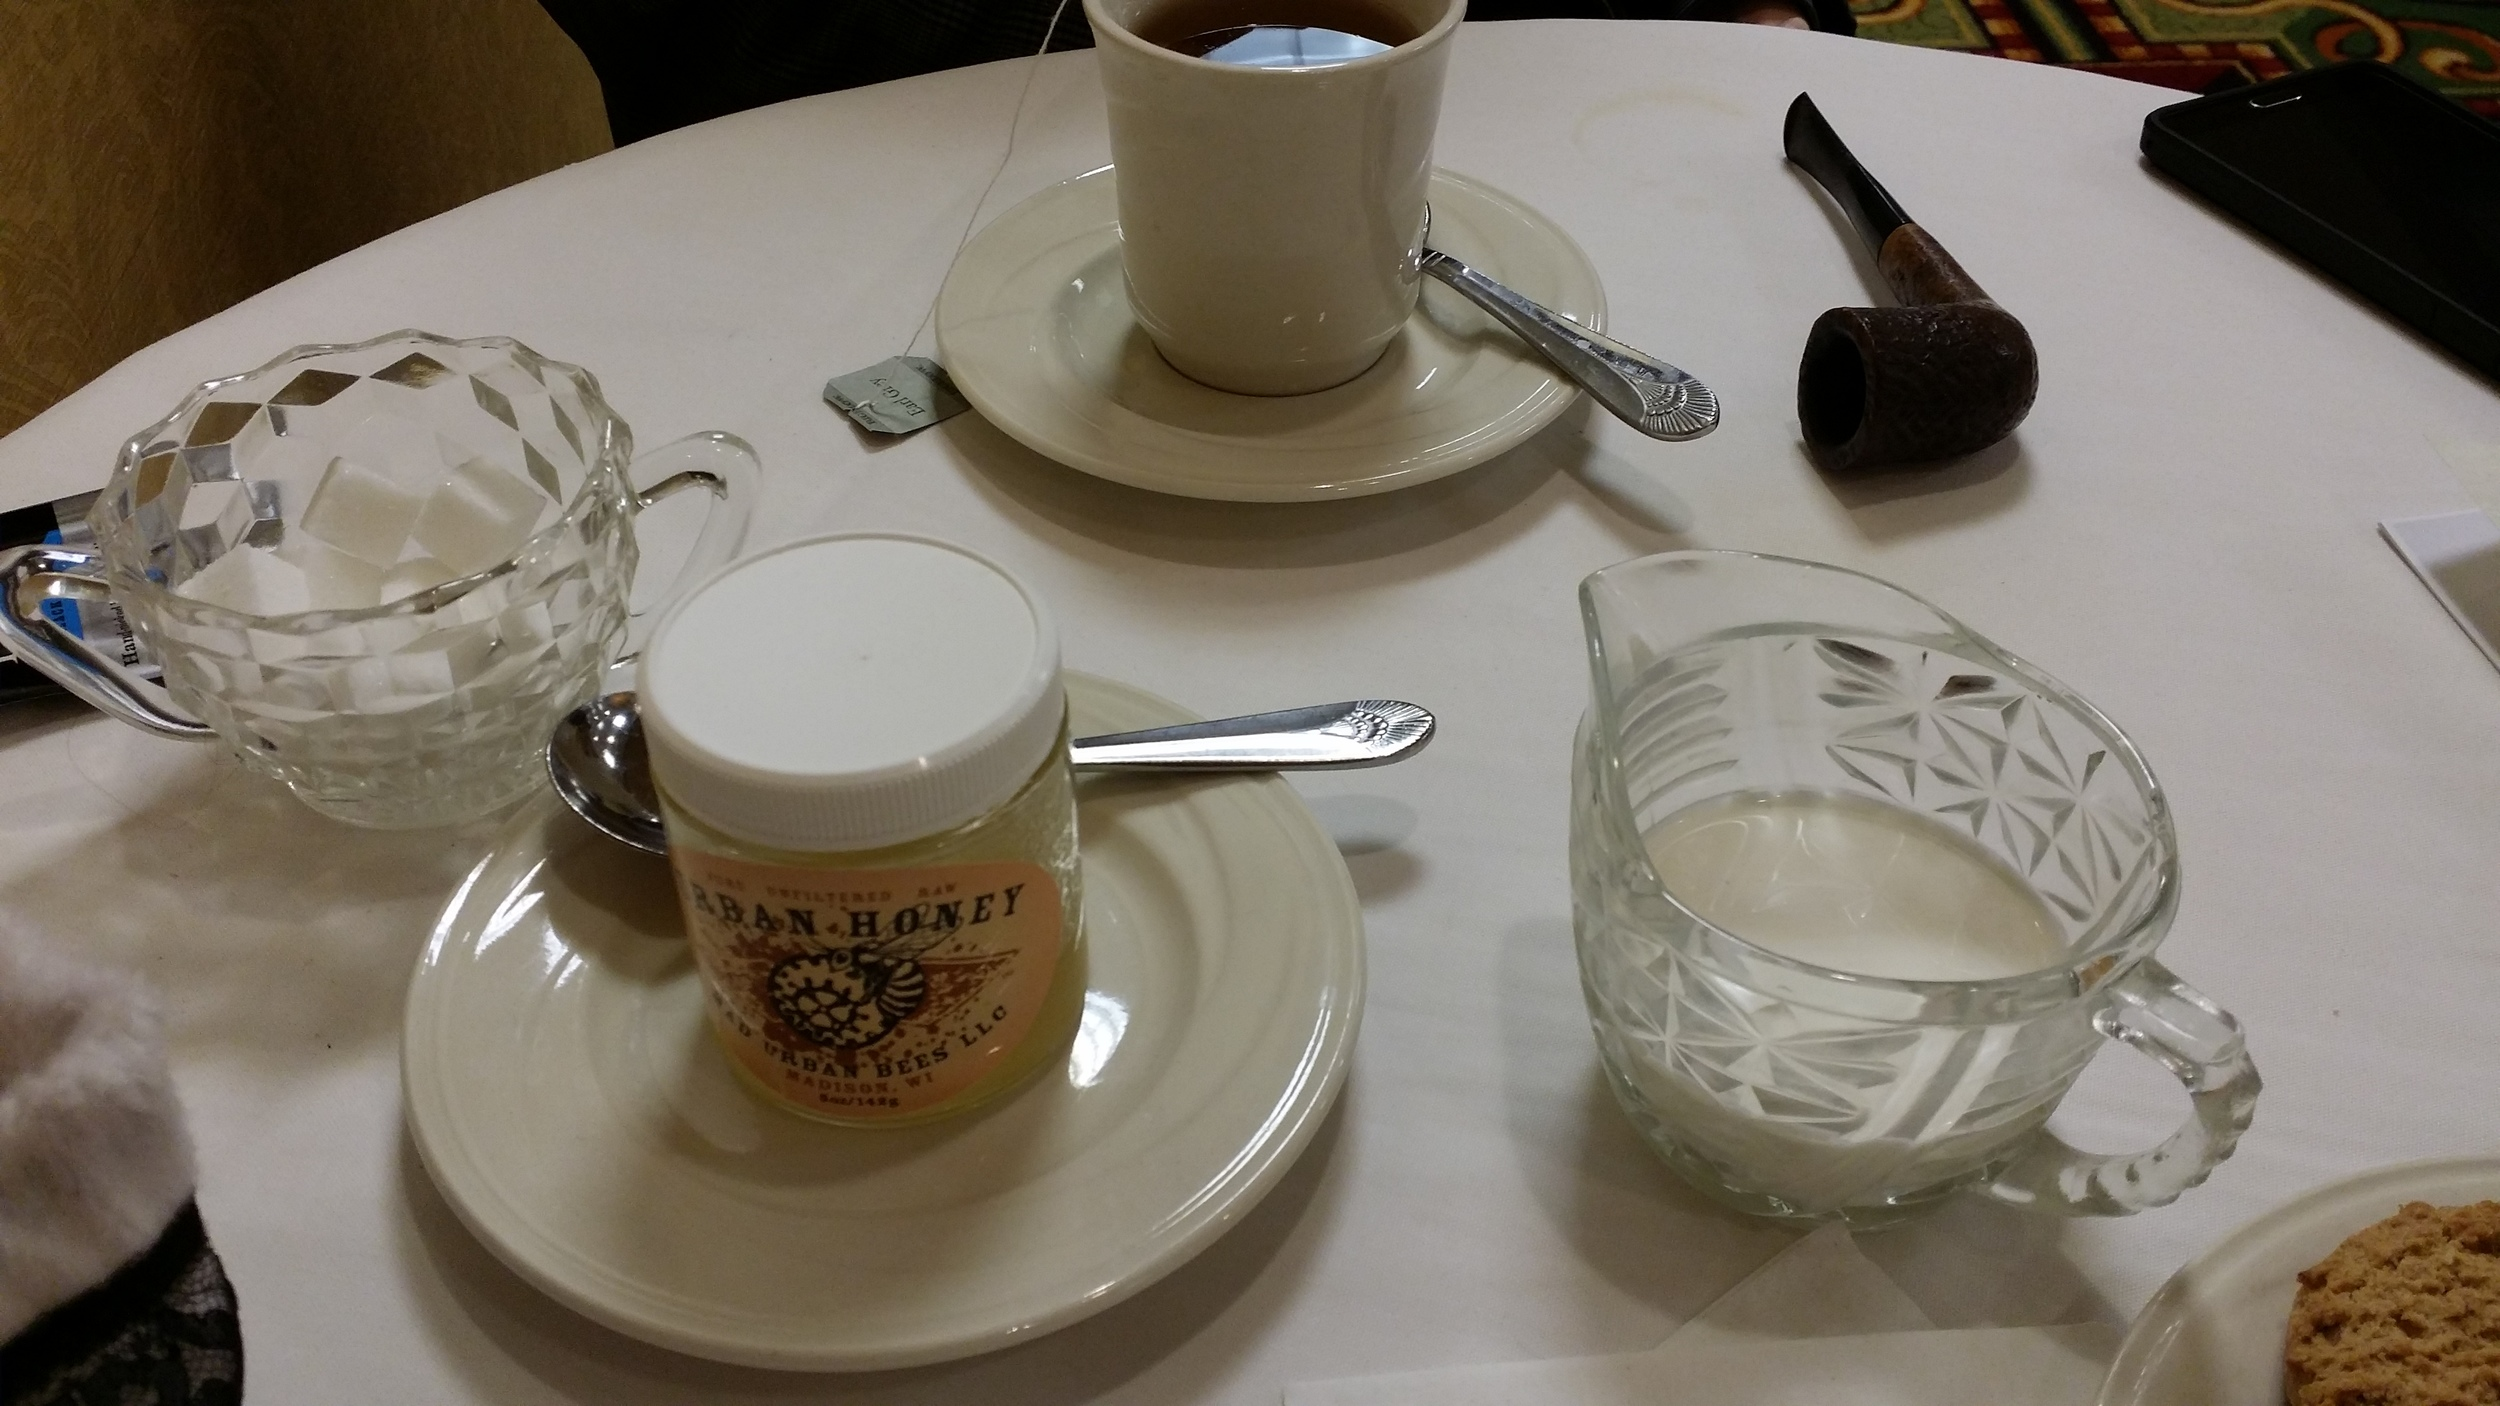 Each table had cream, sugar cubes, and local honey for your tea. (For future reference, I am a splash of cream in my tea kind of girl). Also pipes not includes - we allow props on our tea table.